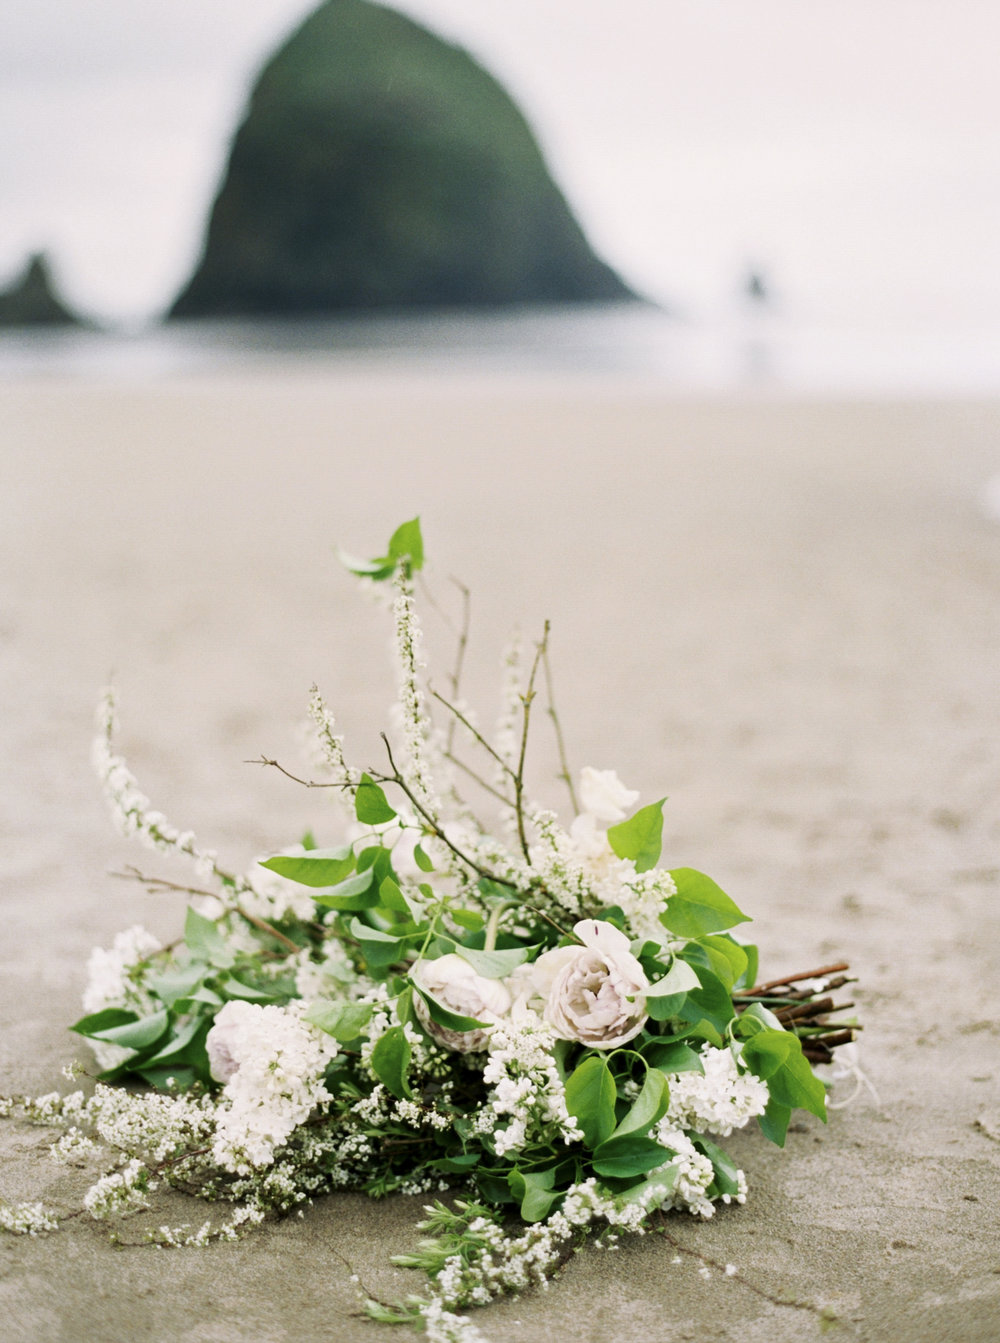 019@outlivecreative_cannon_beach_destination_wedding_photographer_&_videographer.jpg